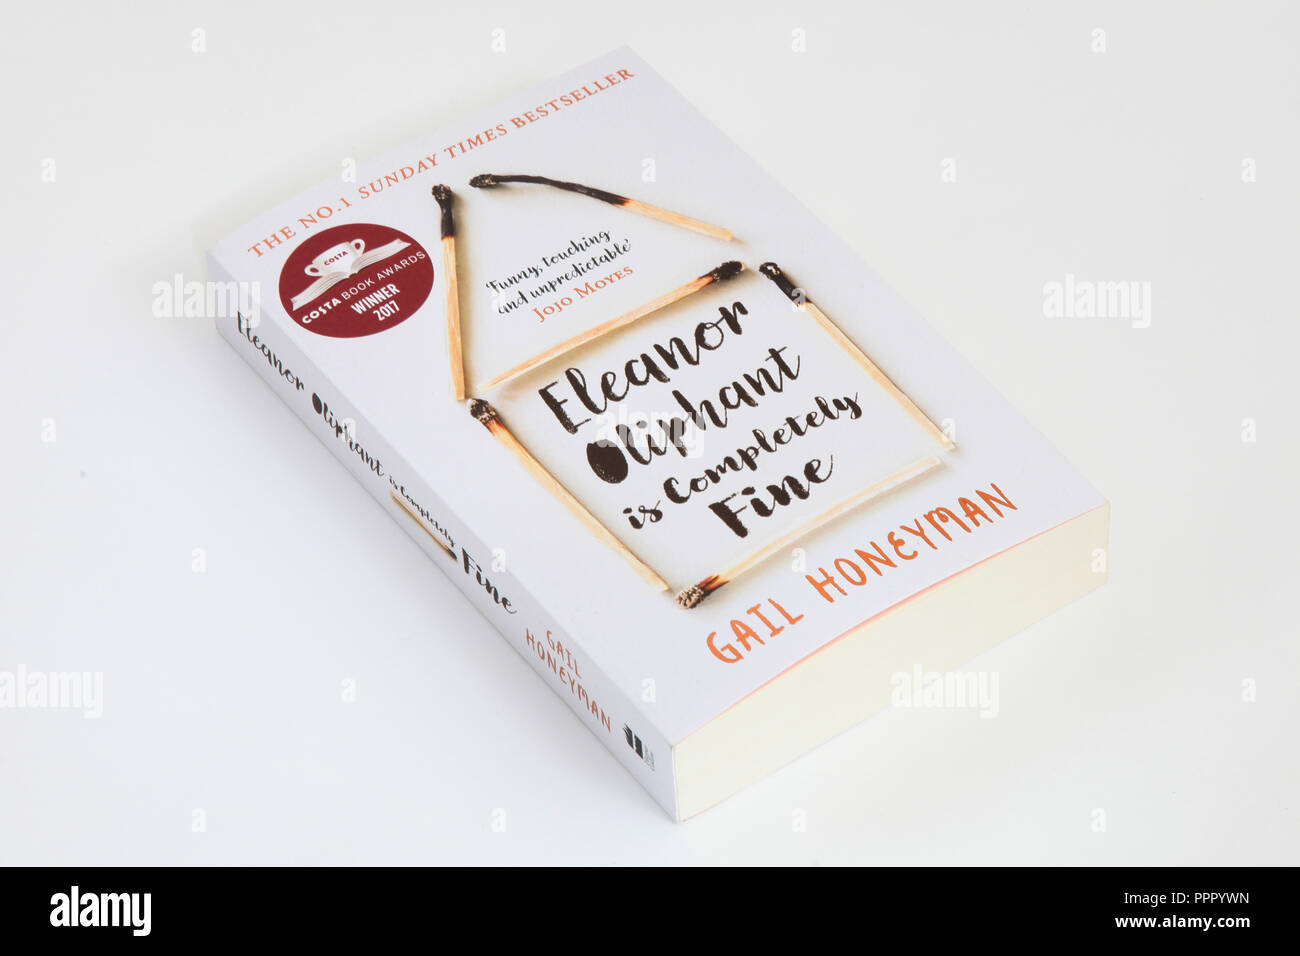 The book, Eleanor Oliphant is completely fine by Gail Honeyman - Stock Image